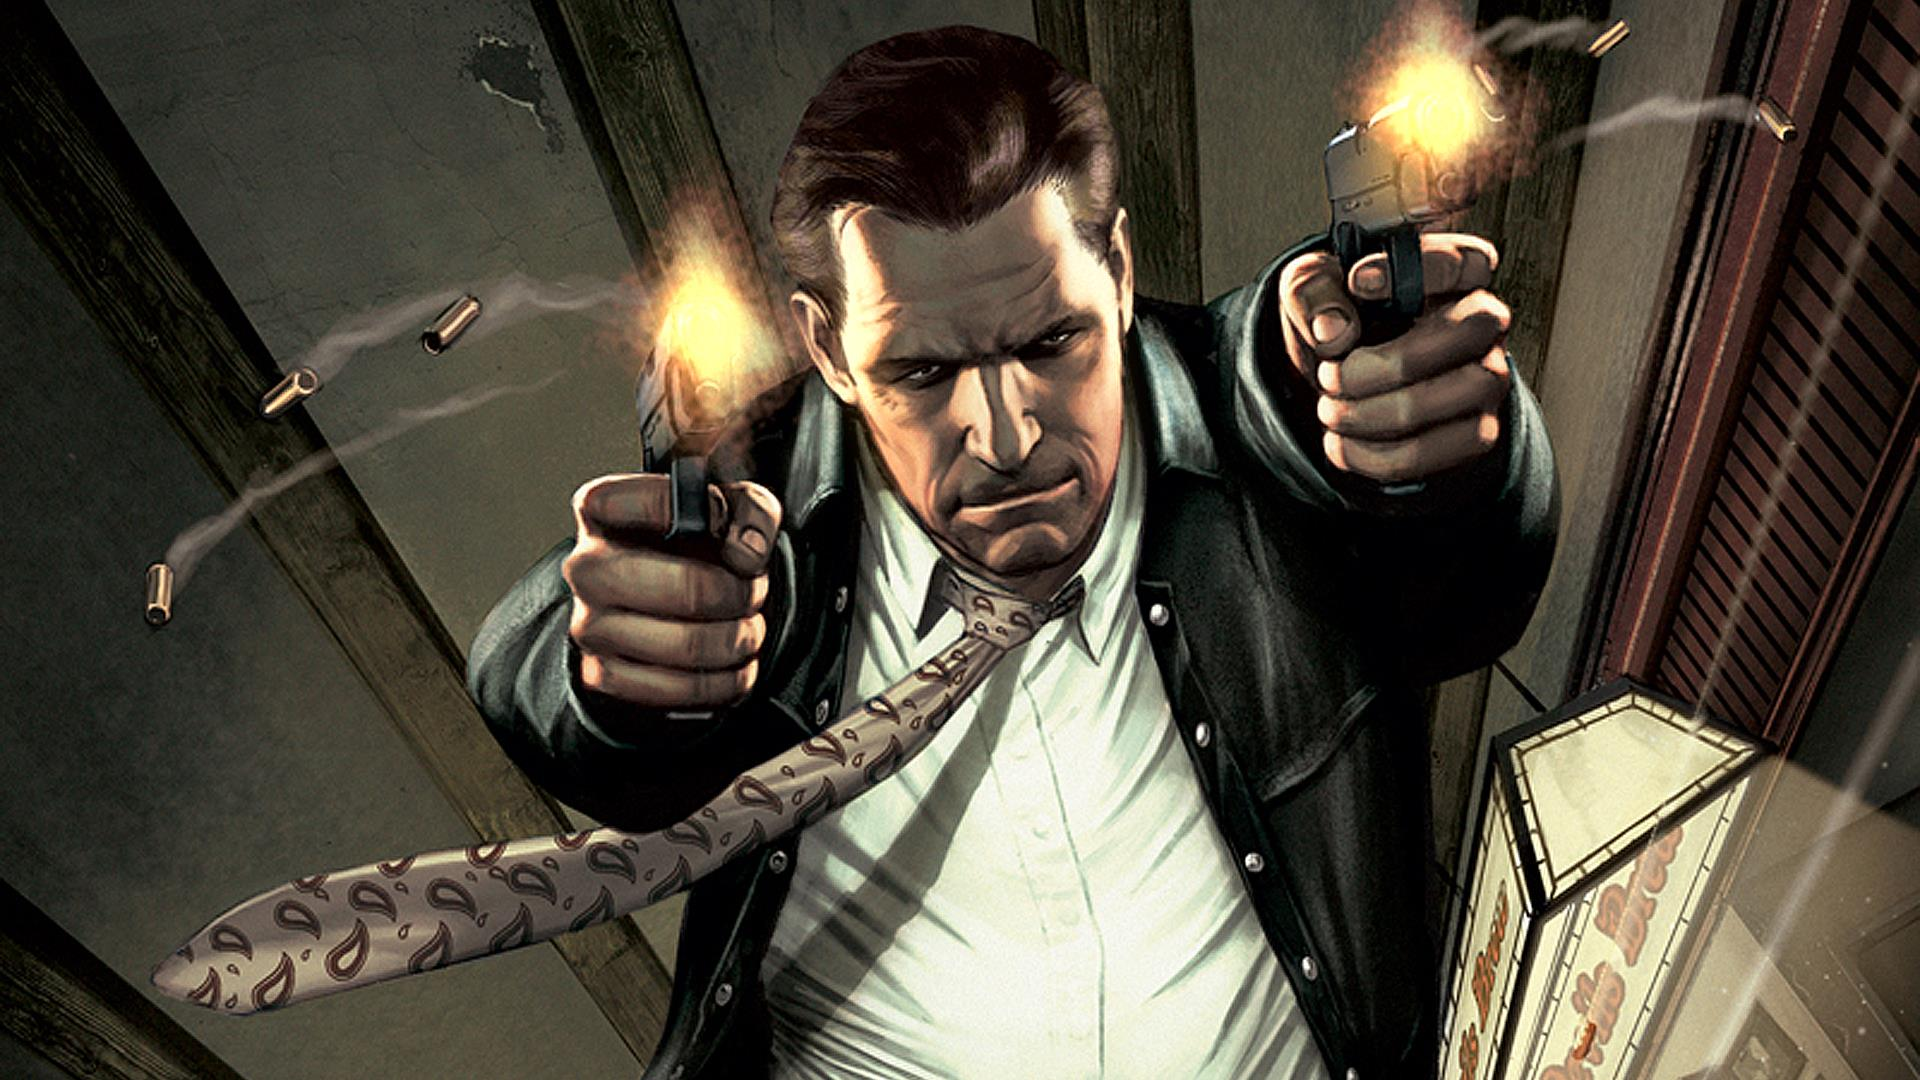 Max Payne 3 Computer Wallpapers Desktop Backgrounds 1920x1080 ID 1920x1080